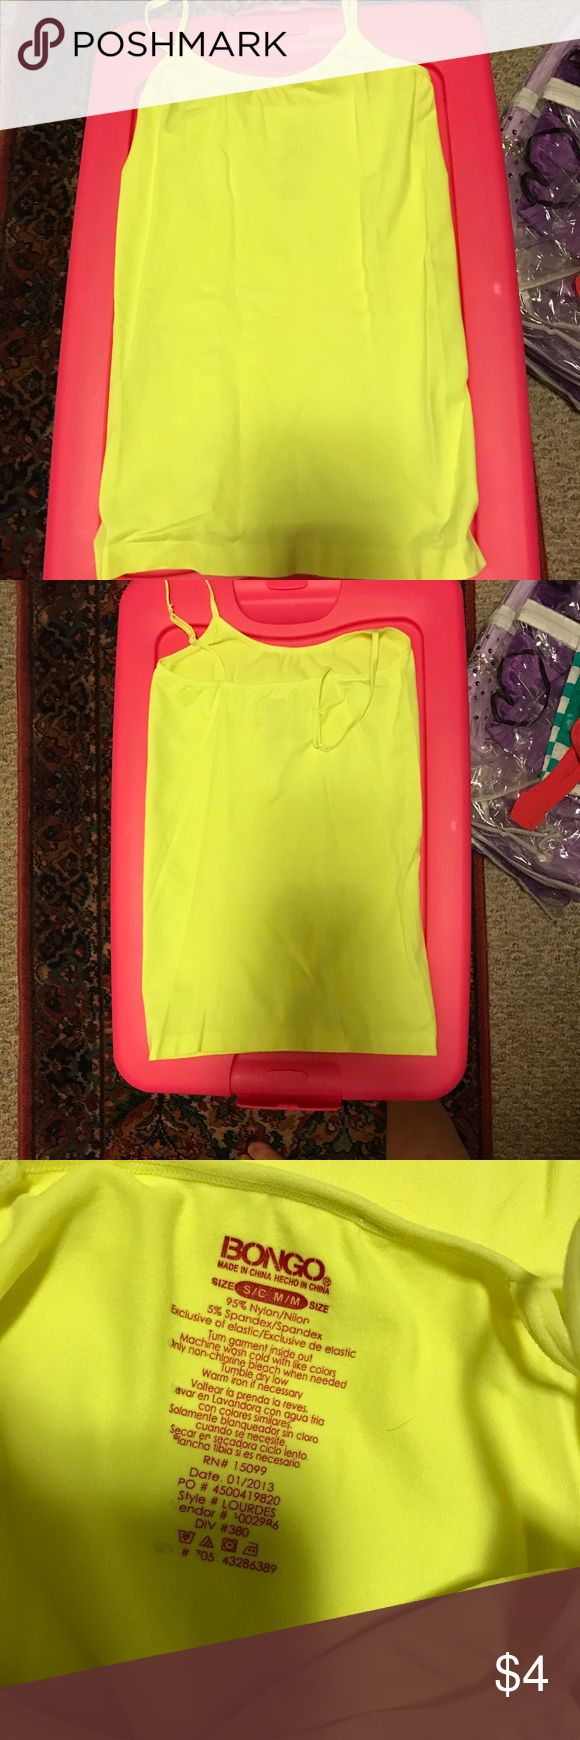 Neon yellow camisole Very bright neon camisole. Never worn. Tops Camisoles